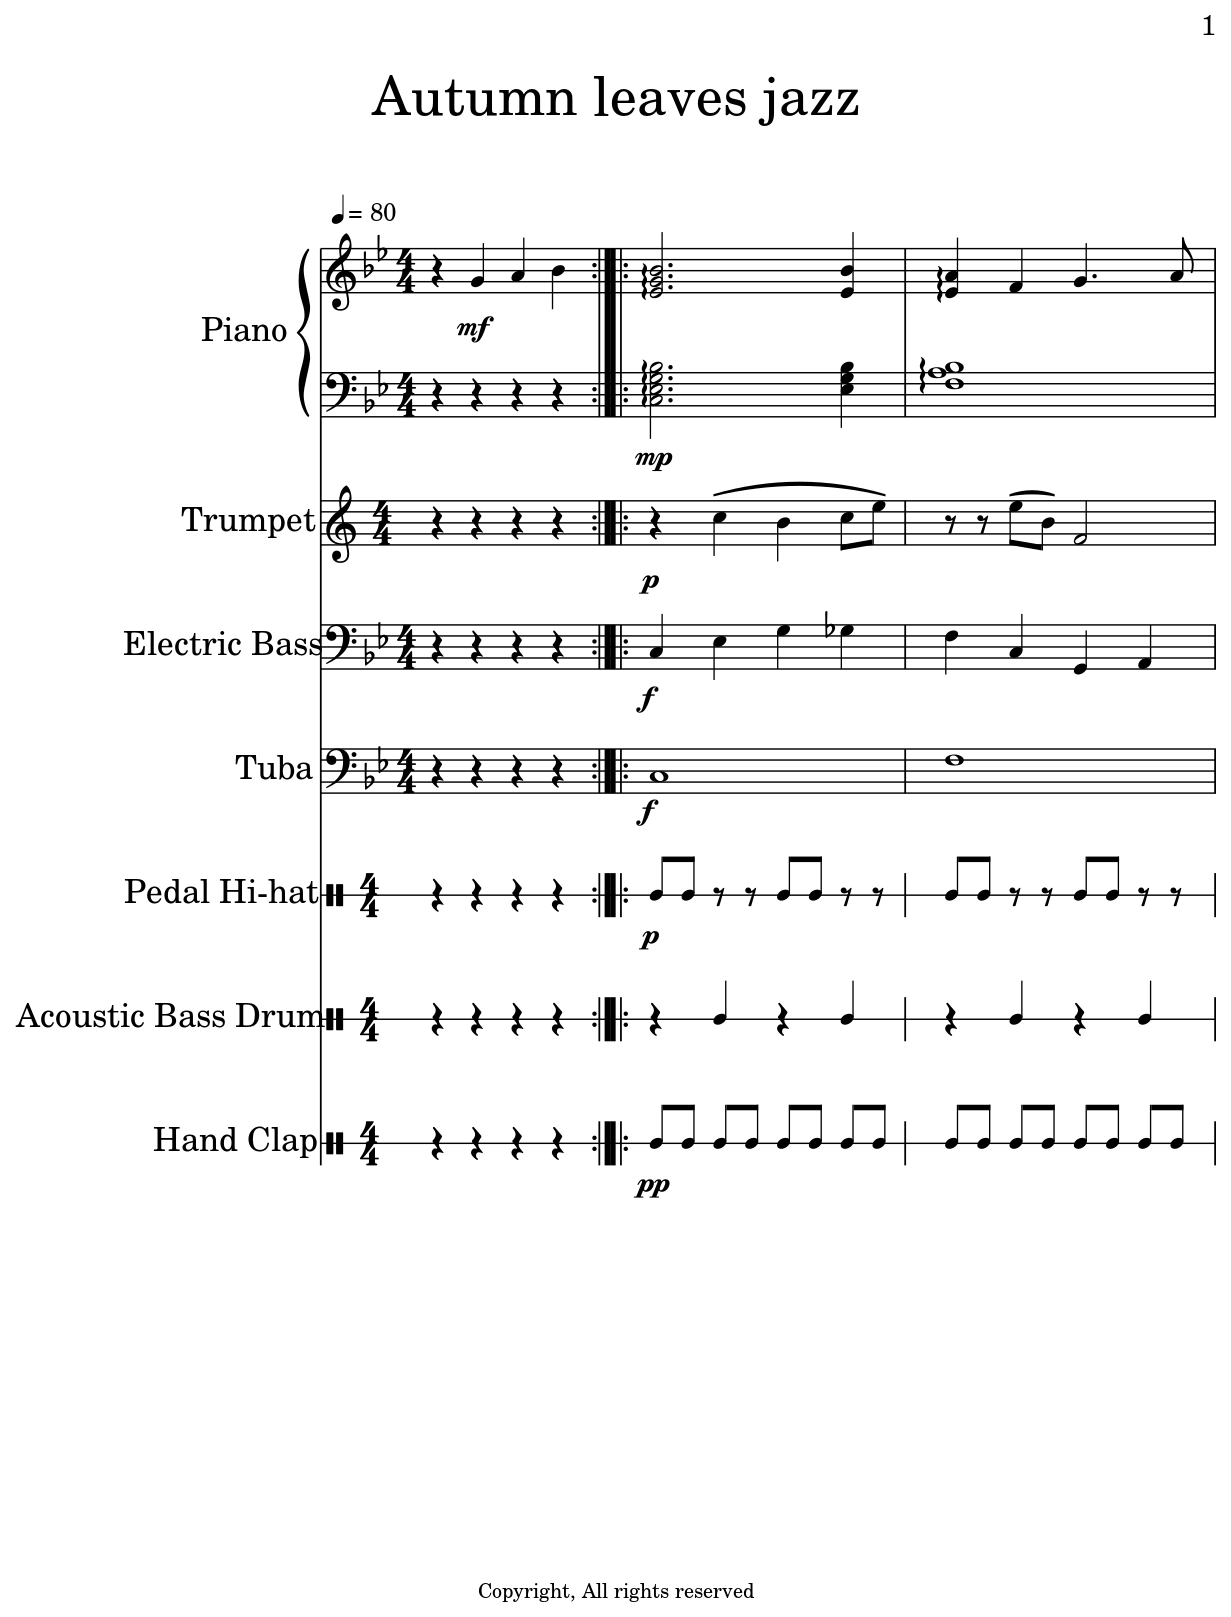 autumn leaves jazz sheet music for piano electric guitar jazz trumpet electric bass tuba. Black Bedroom Furniture Sets. Home Design Ideas